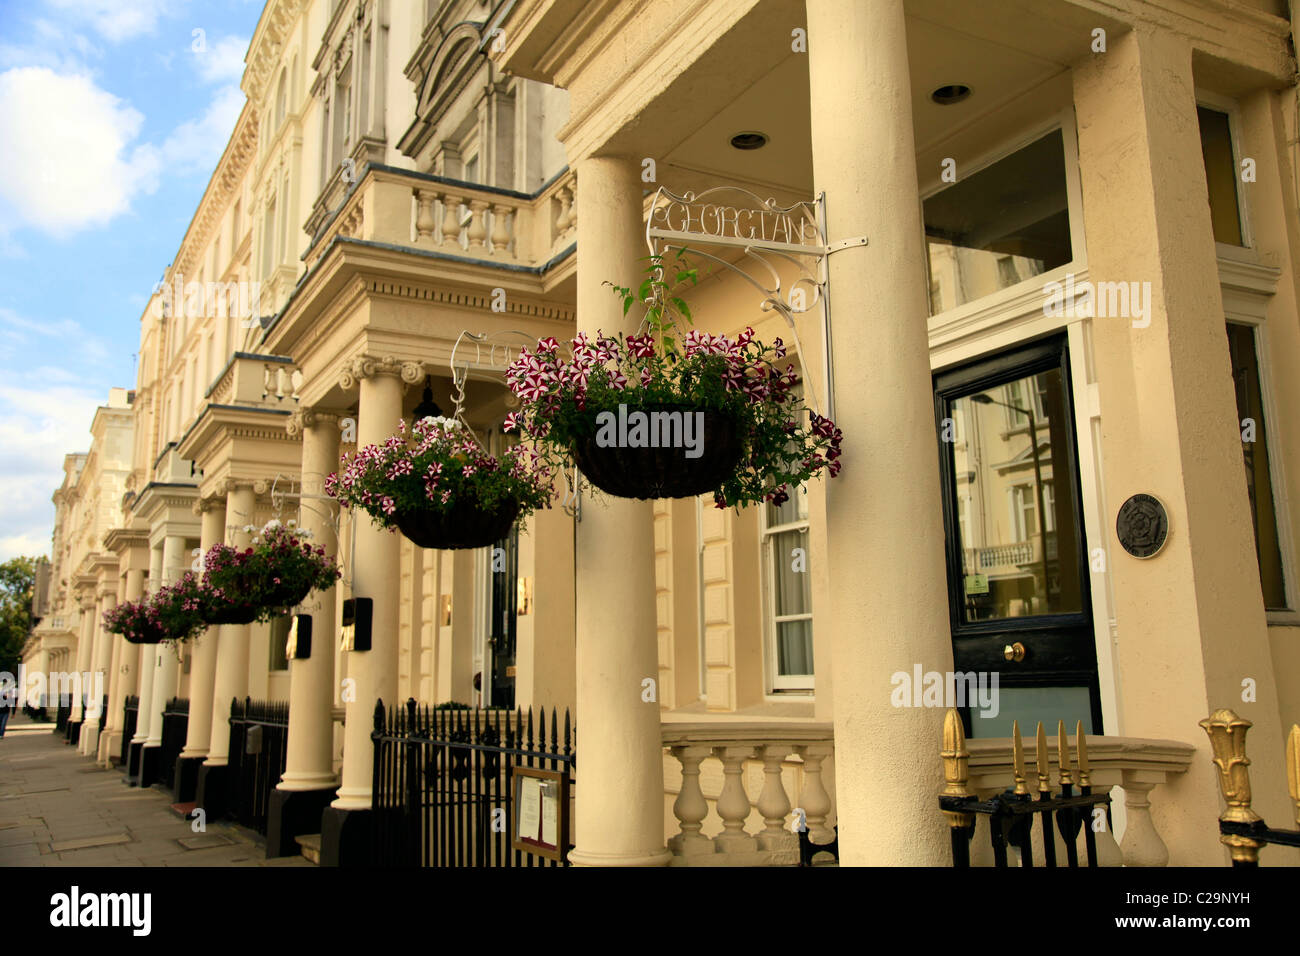 building with hanging baskets stockfotos building with hanging baskets bilder seite 11 alamy. Black Bedroom Furniture Sets. Home Design Ideas